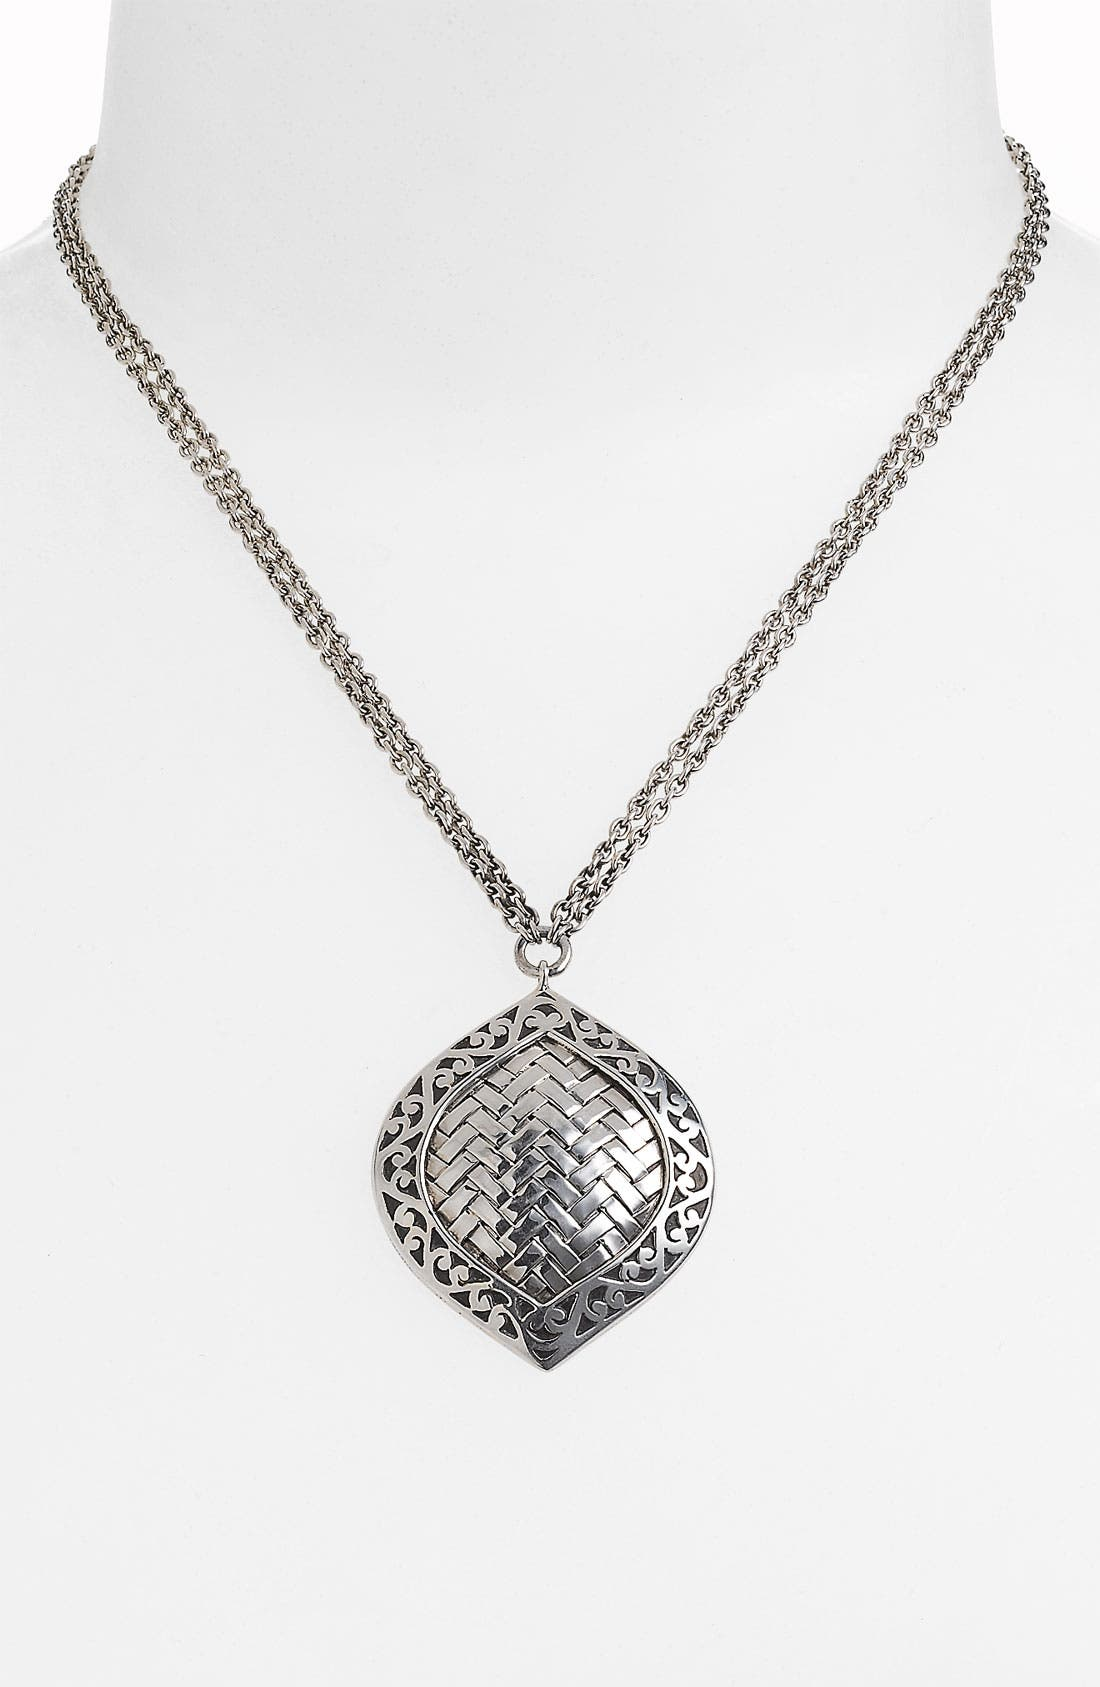 Main Image - Lois Hill 'Basket Weave' Bulb Pendant Necklace